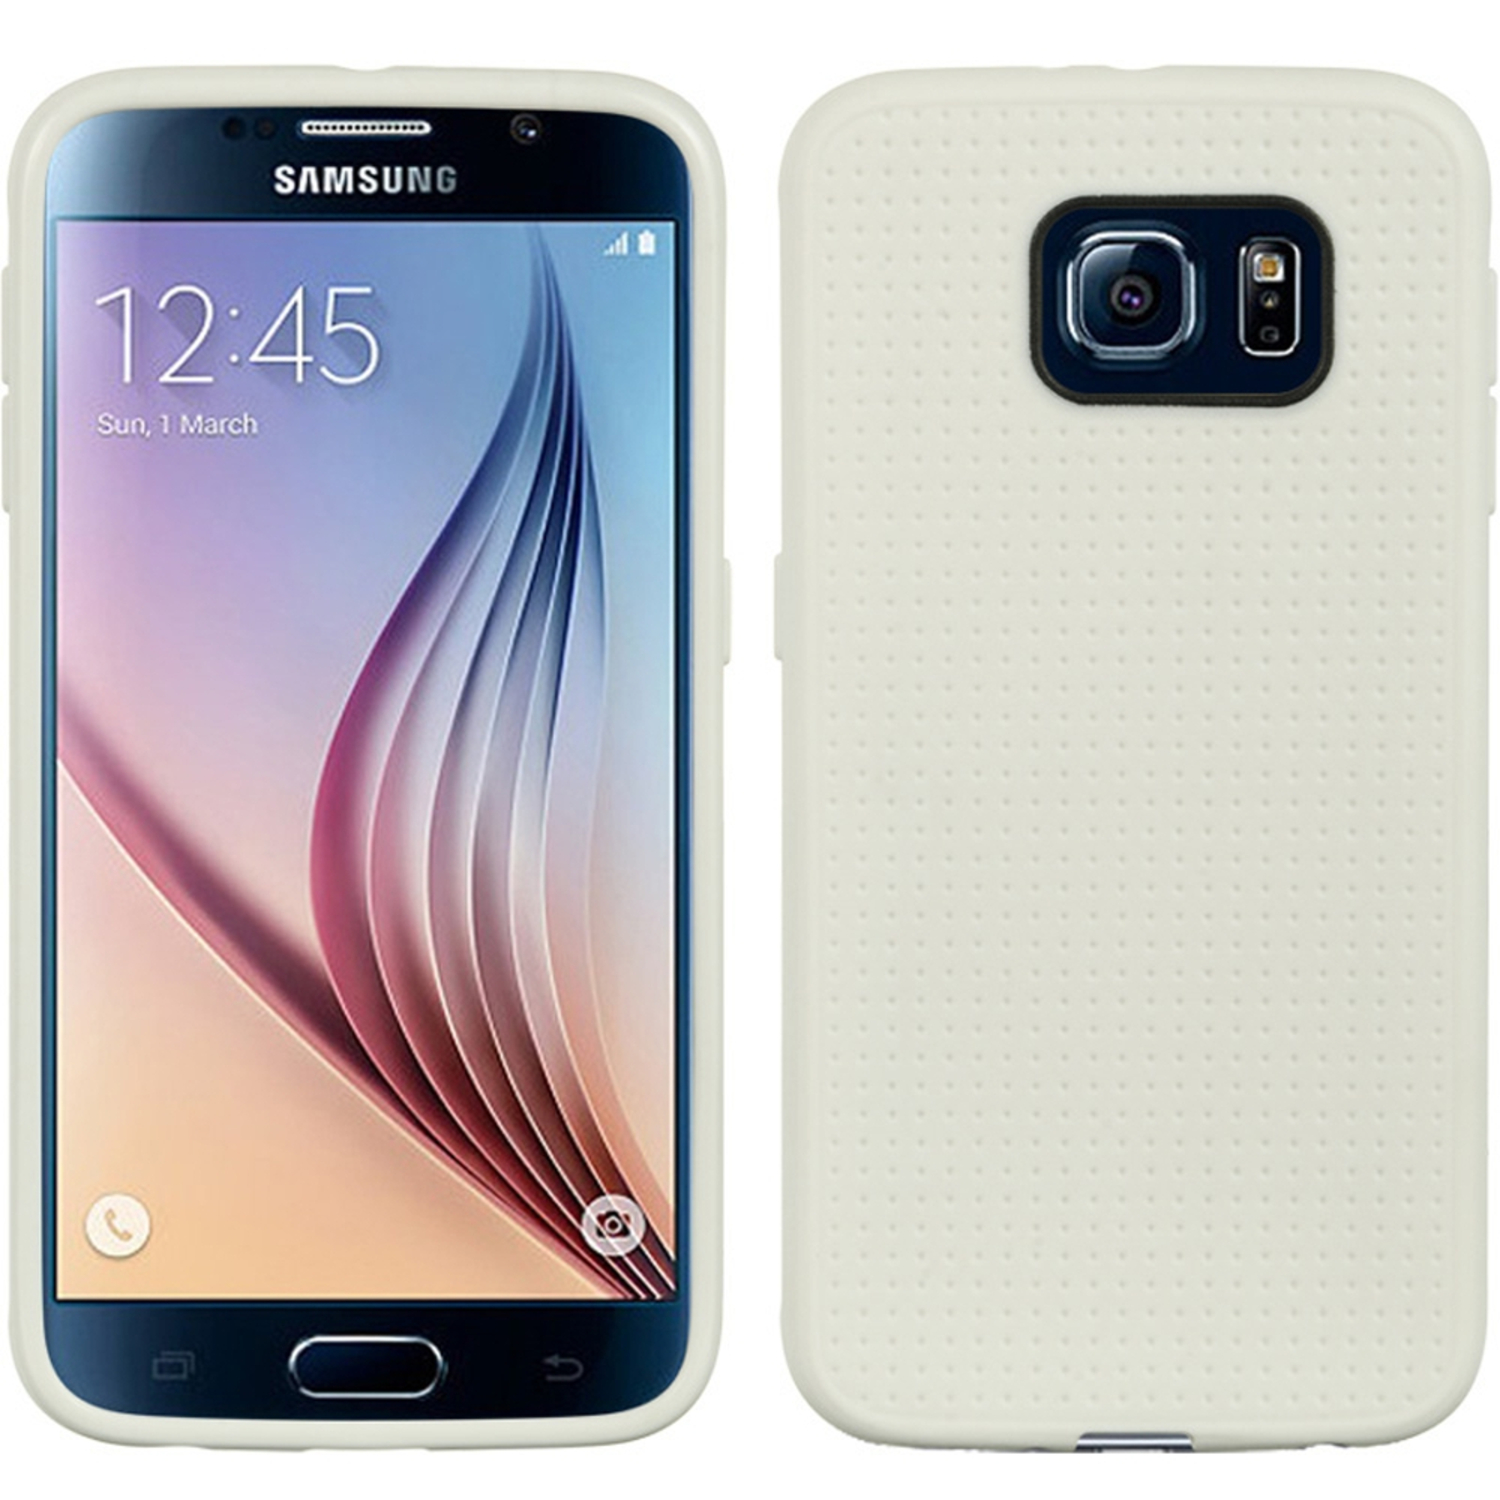 Samsung Galaxy S6 Case, by Insten Dots Rubber TPU Case Cover For Samsung Galaxy S6 SM-G920